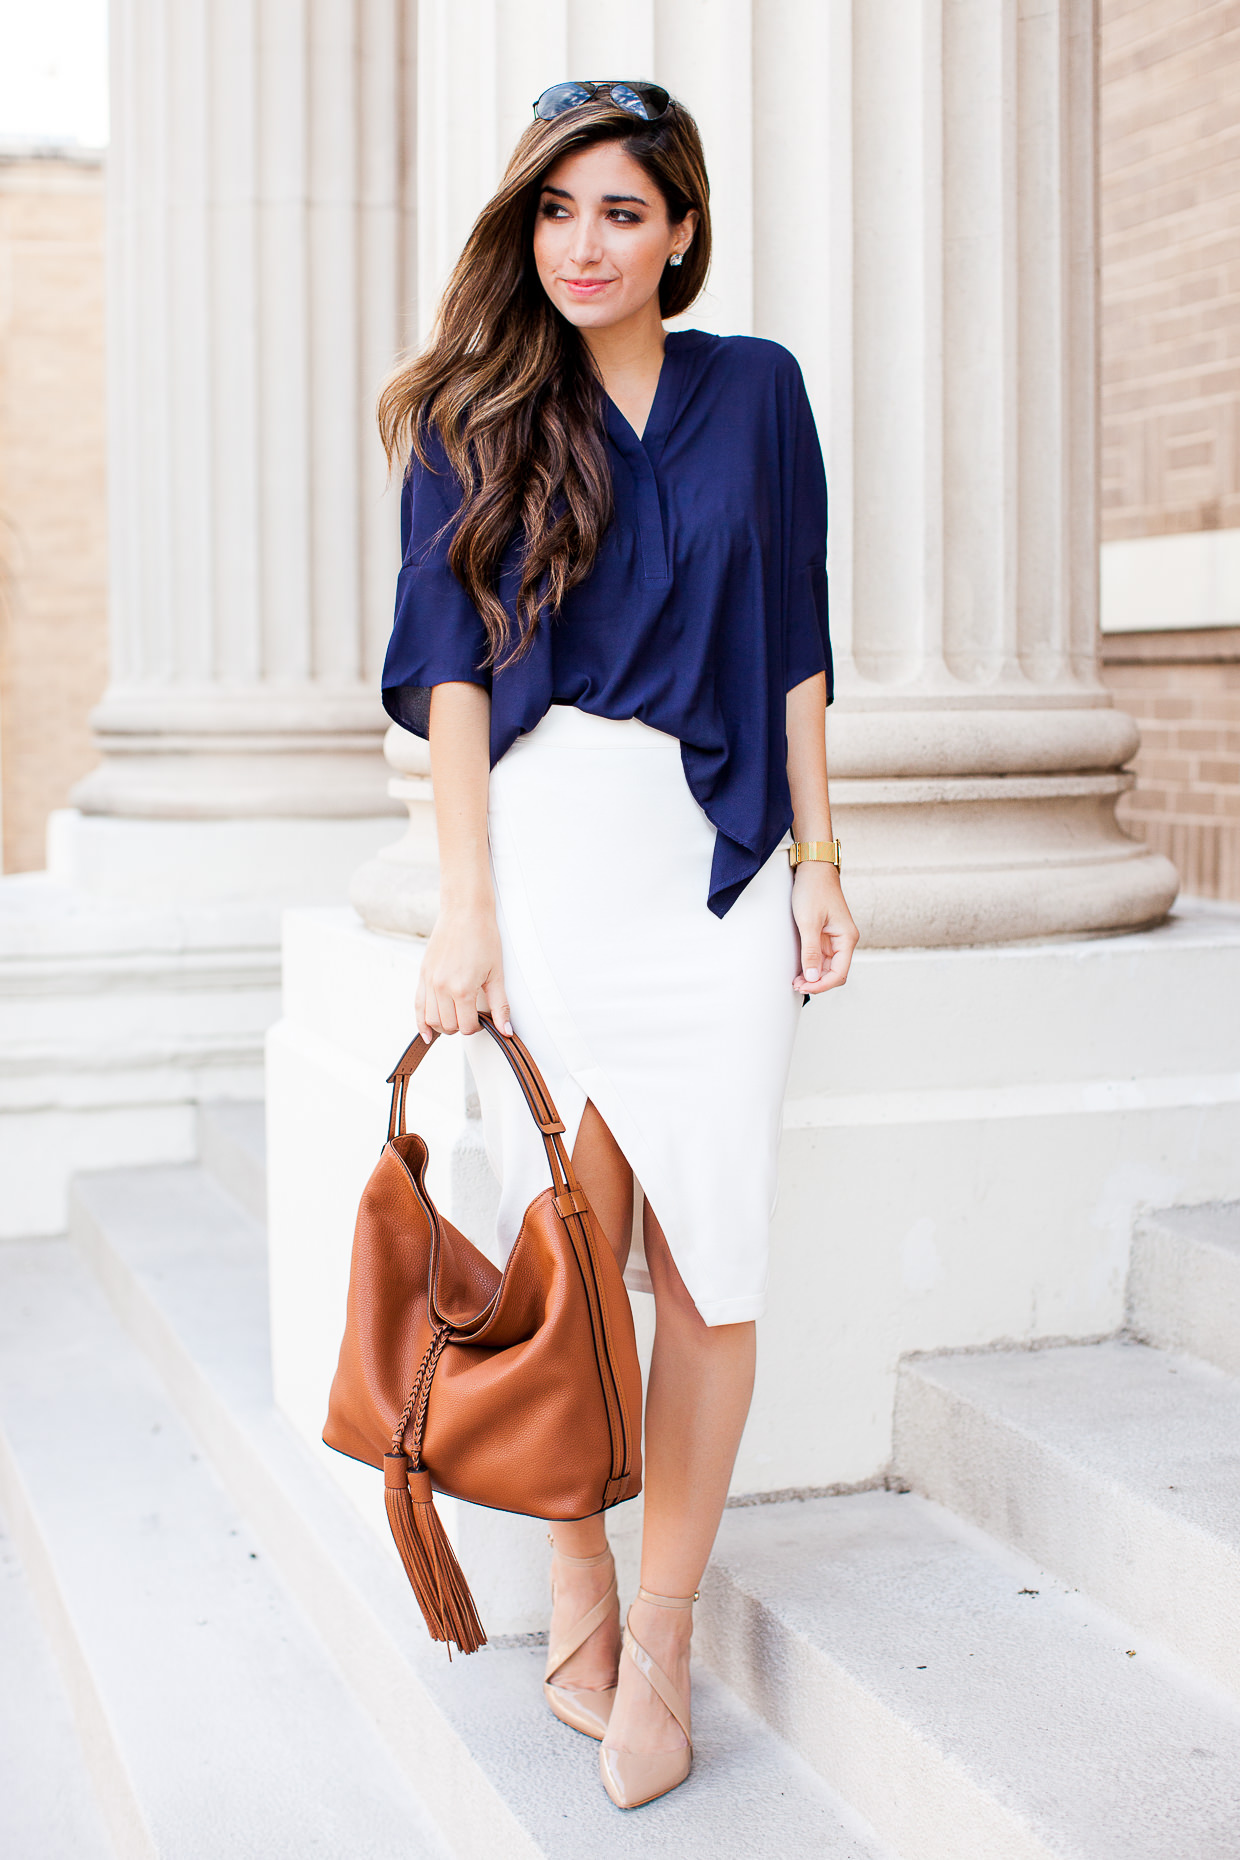 sophisticated outfit